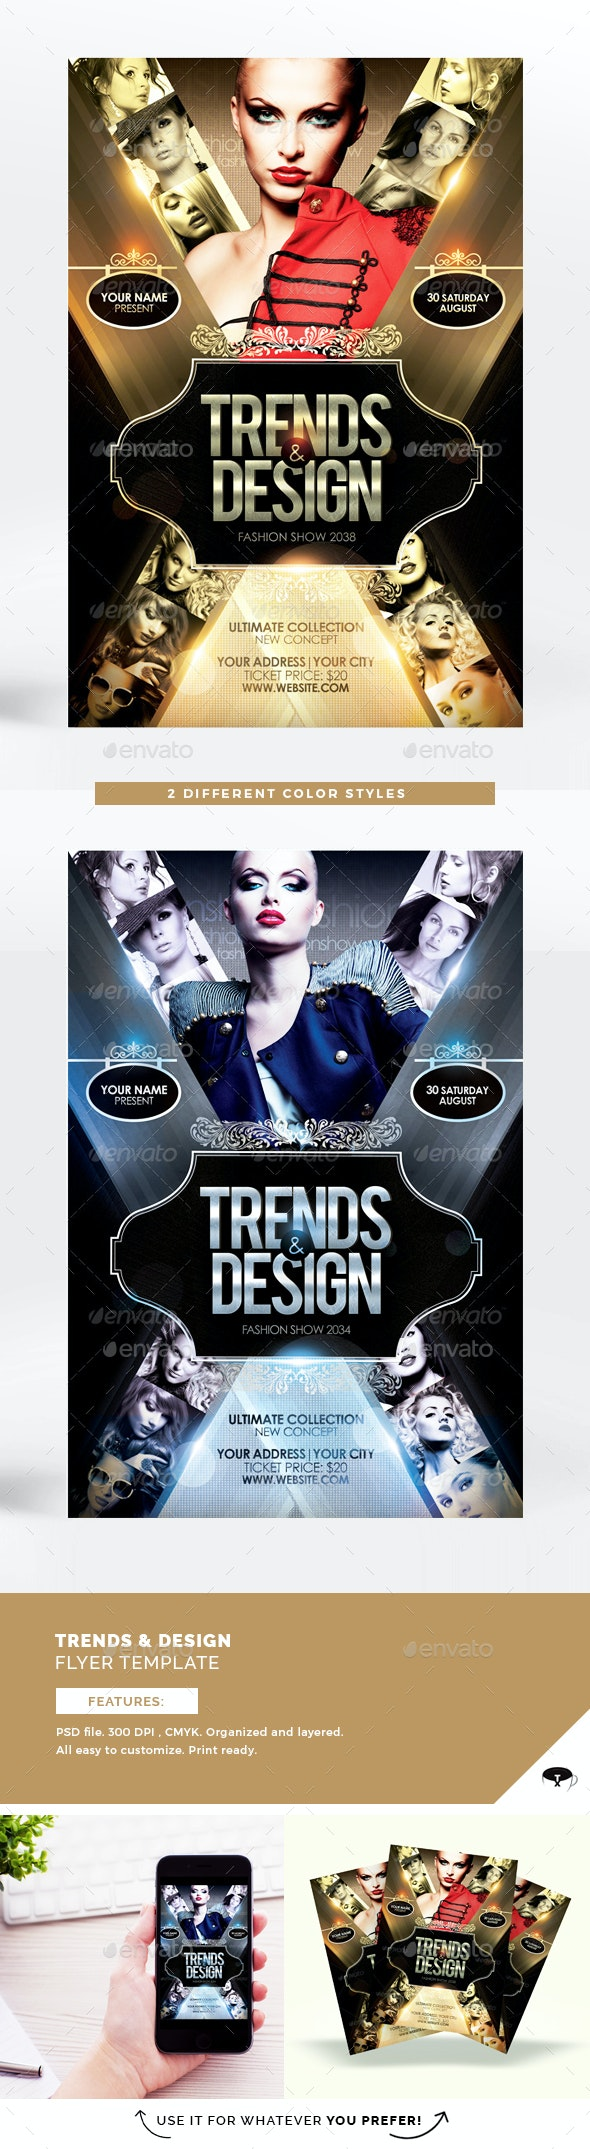 Trends & Design Flyer Template - Miscellaneous Events